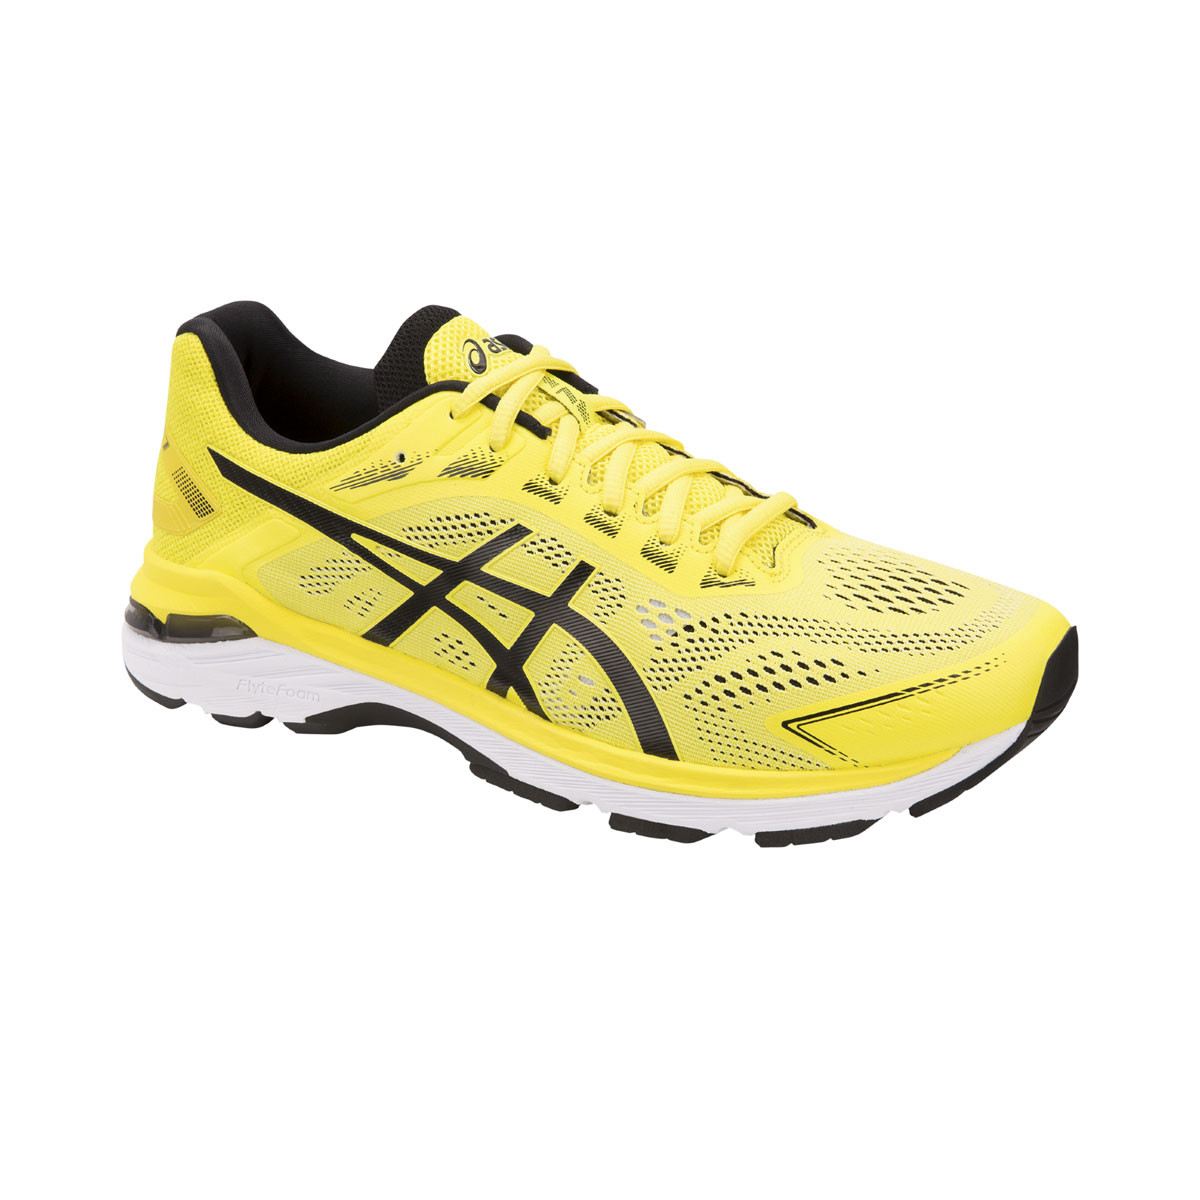 Asics GT-2000 7- Lemon Spark/Black 4